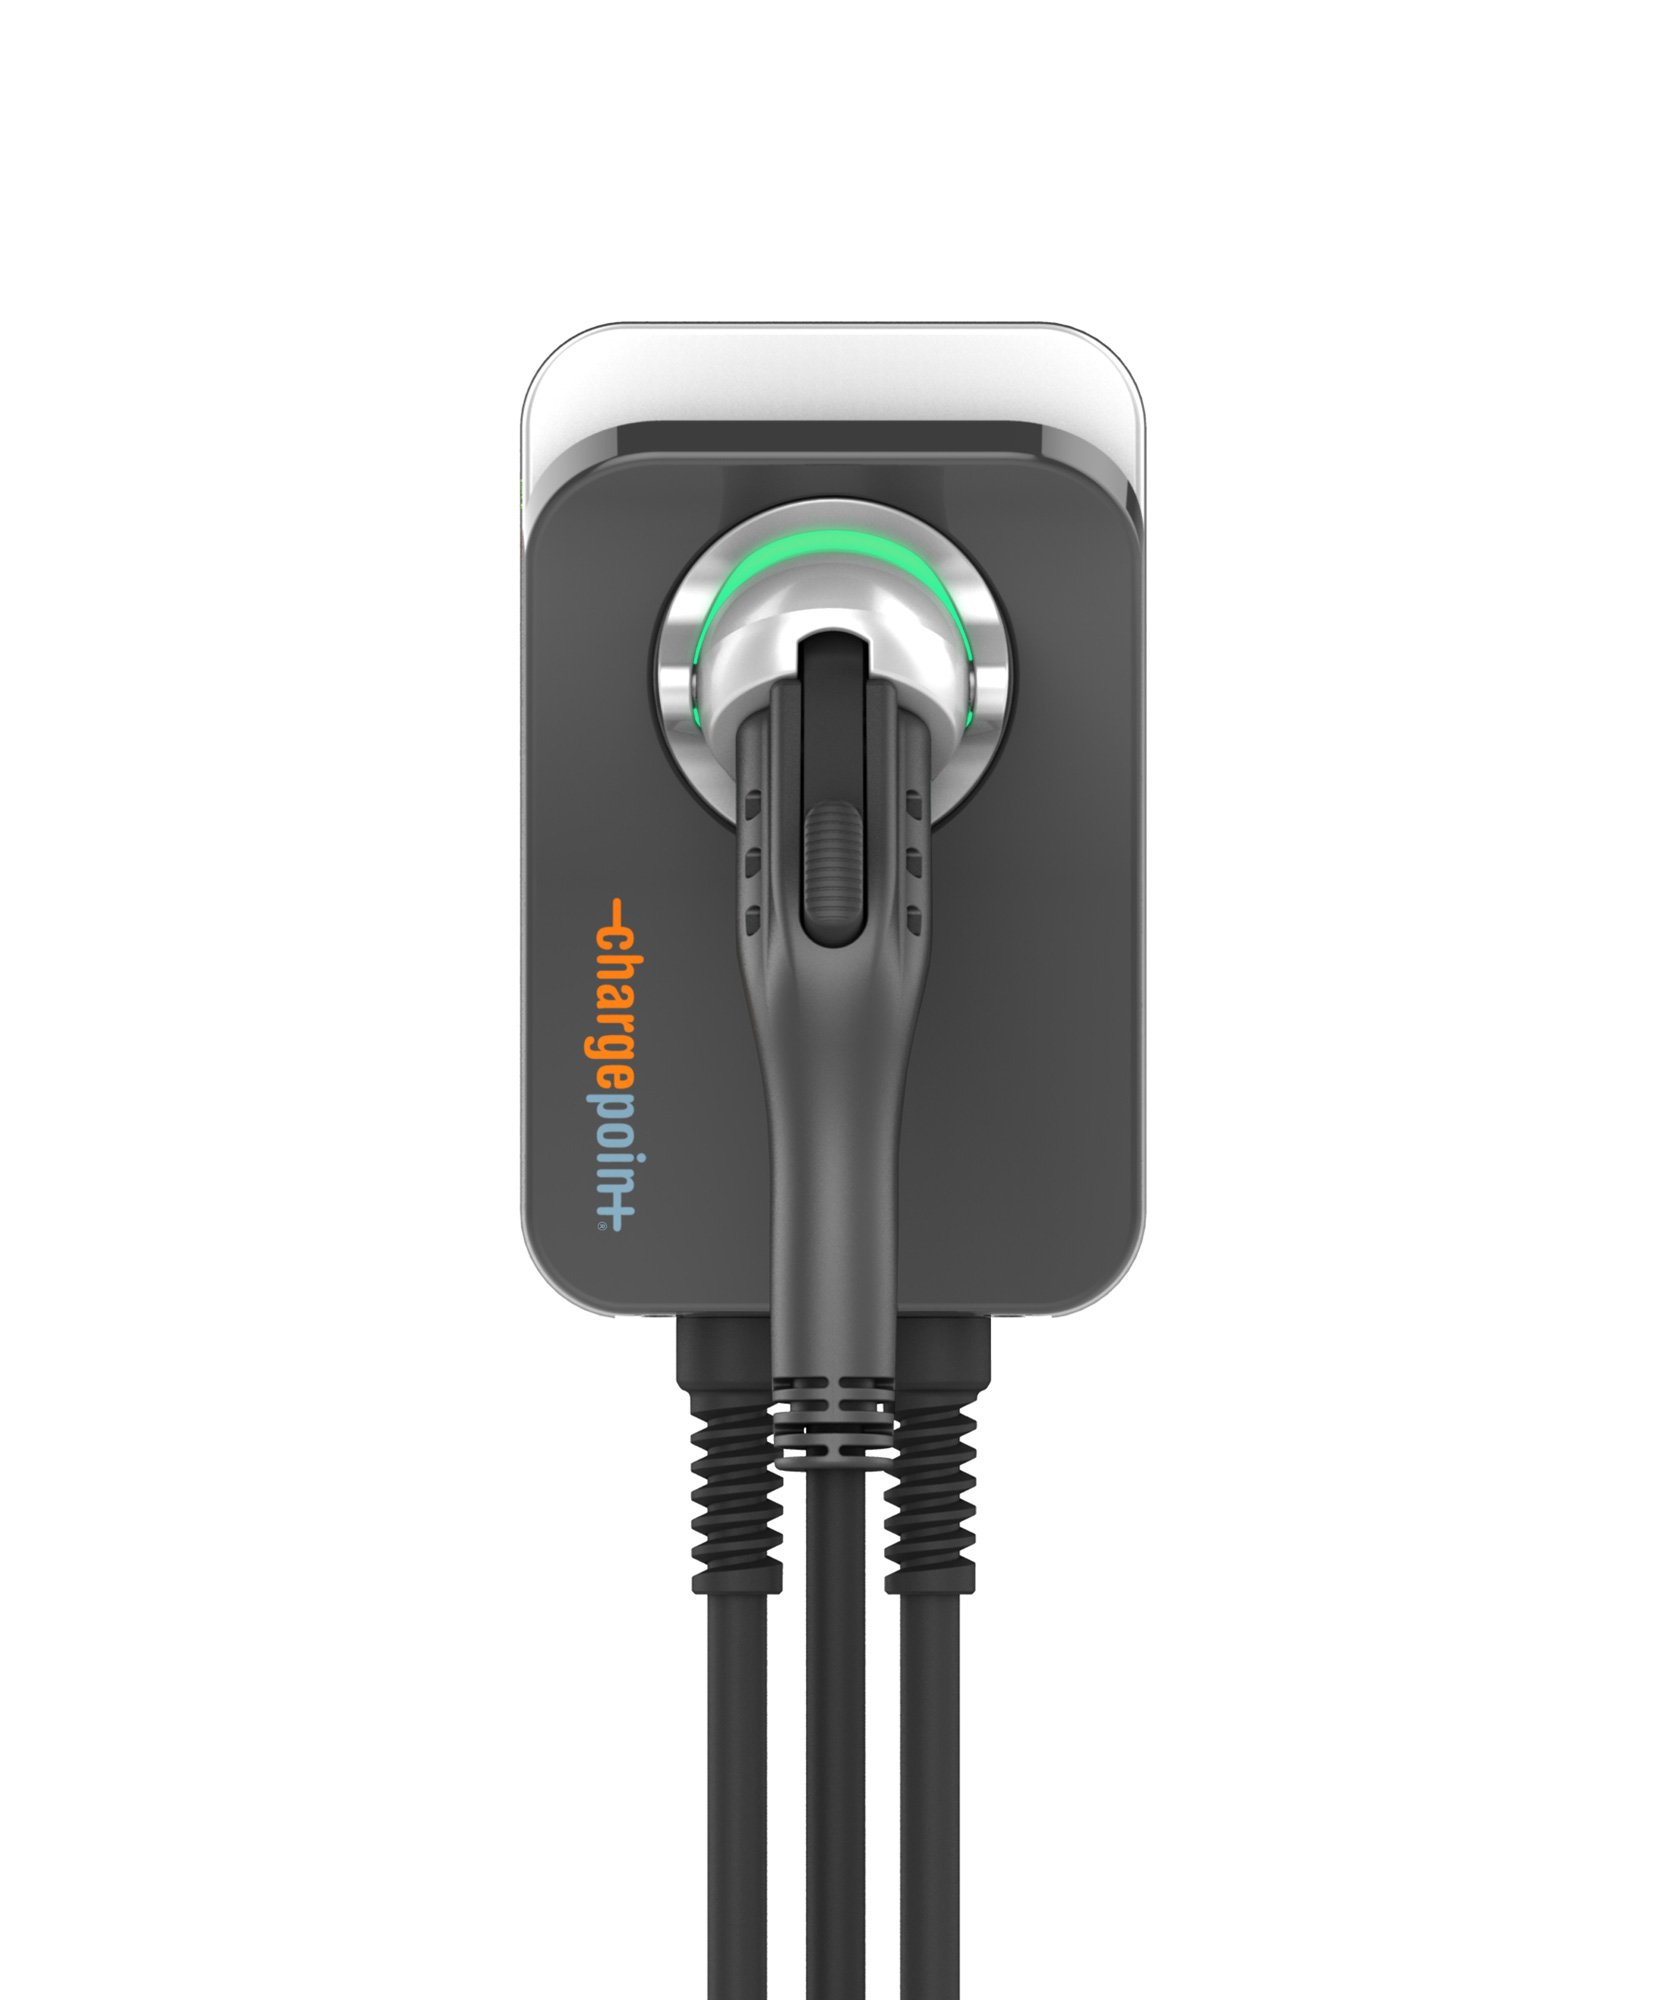 ChargePoint Home Electric Vehicle Charger: 16 Amp, plug-in station by ChargePoint (Image #1)